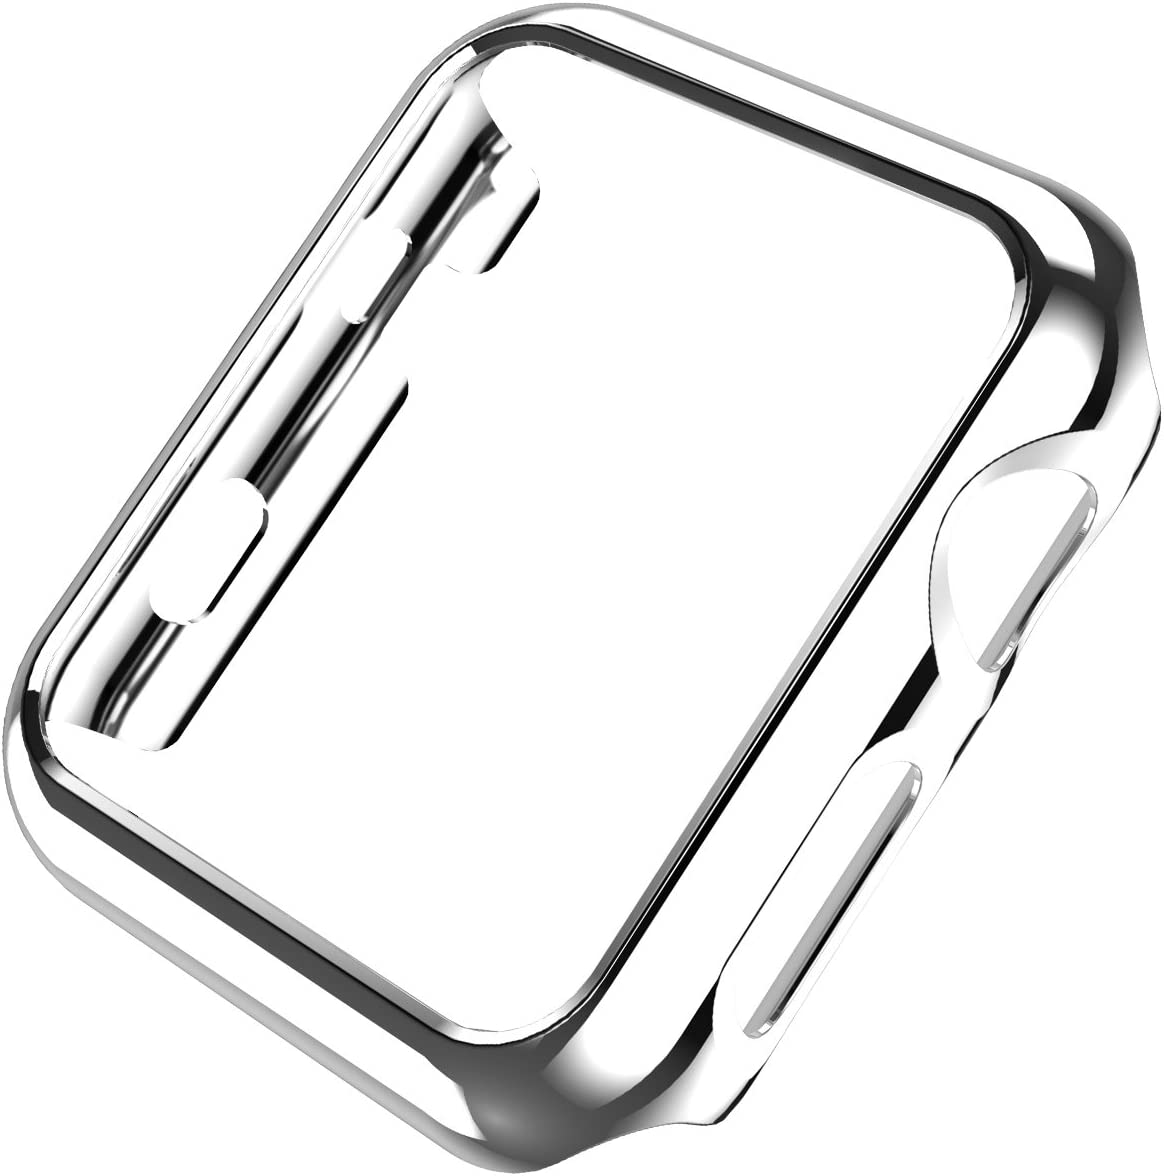 Leotop Compatible with Apple Watch Case 44mm 40mm, Super Thin PC Plated Bumper Protector Shiny Cover Lightweight Slim Shell Shockproof Frame Accessories Compatible iWatch Series 6 5 4 SE(Silver, 44mm)